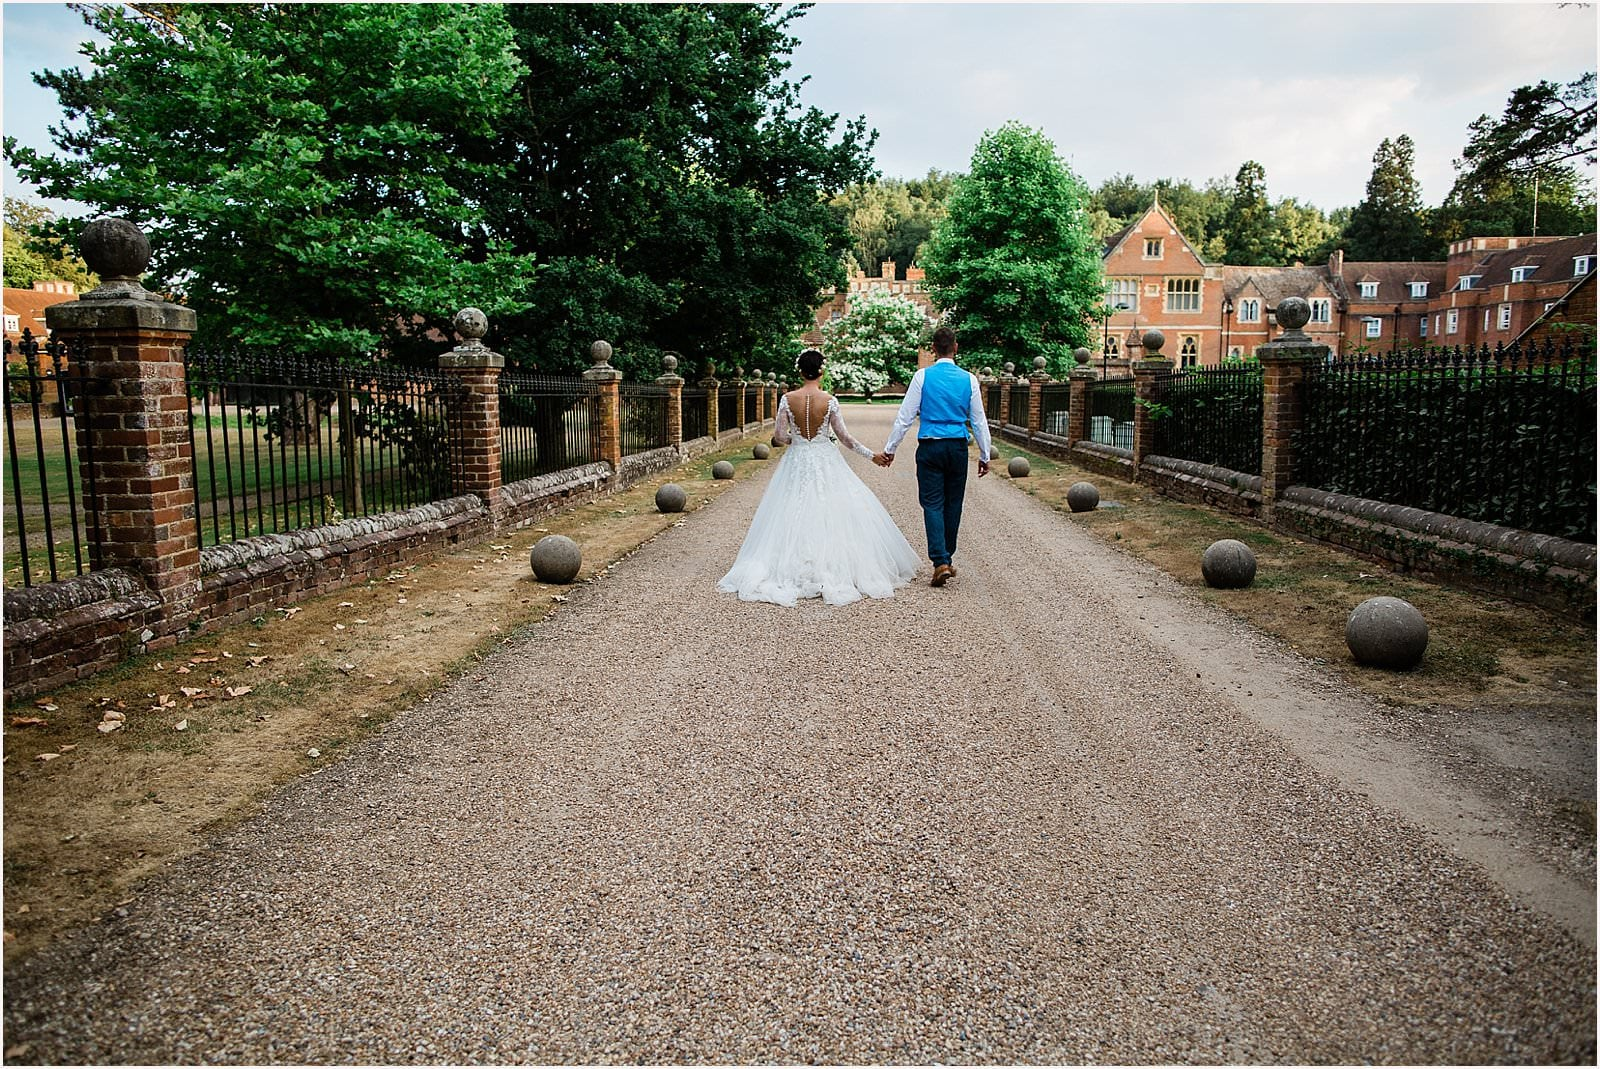 Wotton House Wedding - Justine + Rob's stunning wedding 48